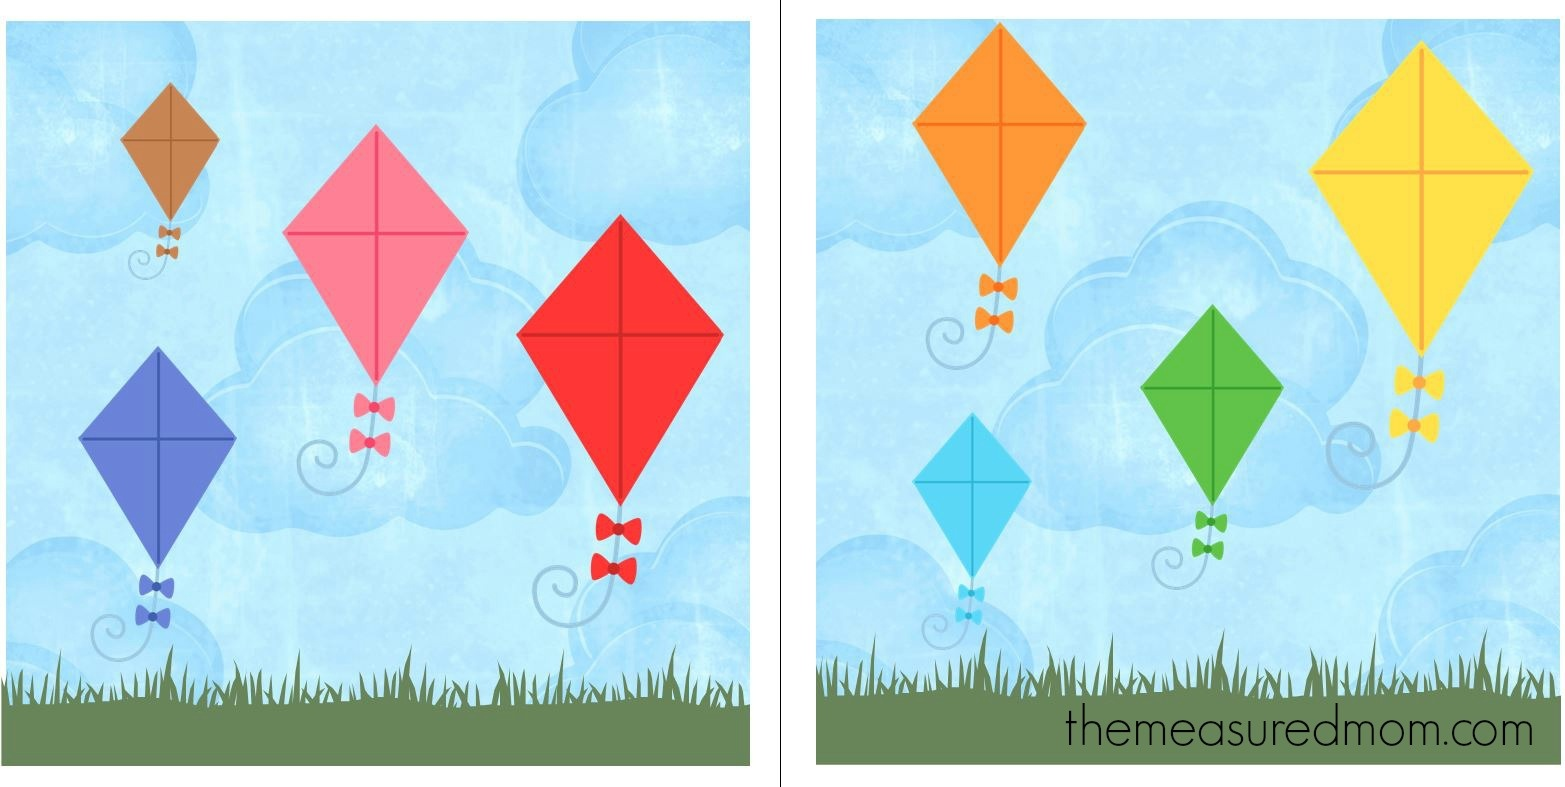 Free File Folder Game For Preschoolers: Kites! - The Measured Mom - Free Printable File Folder Games For Preschool